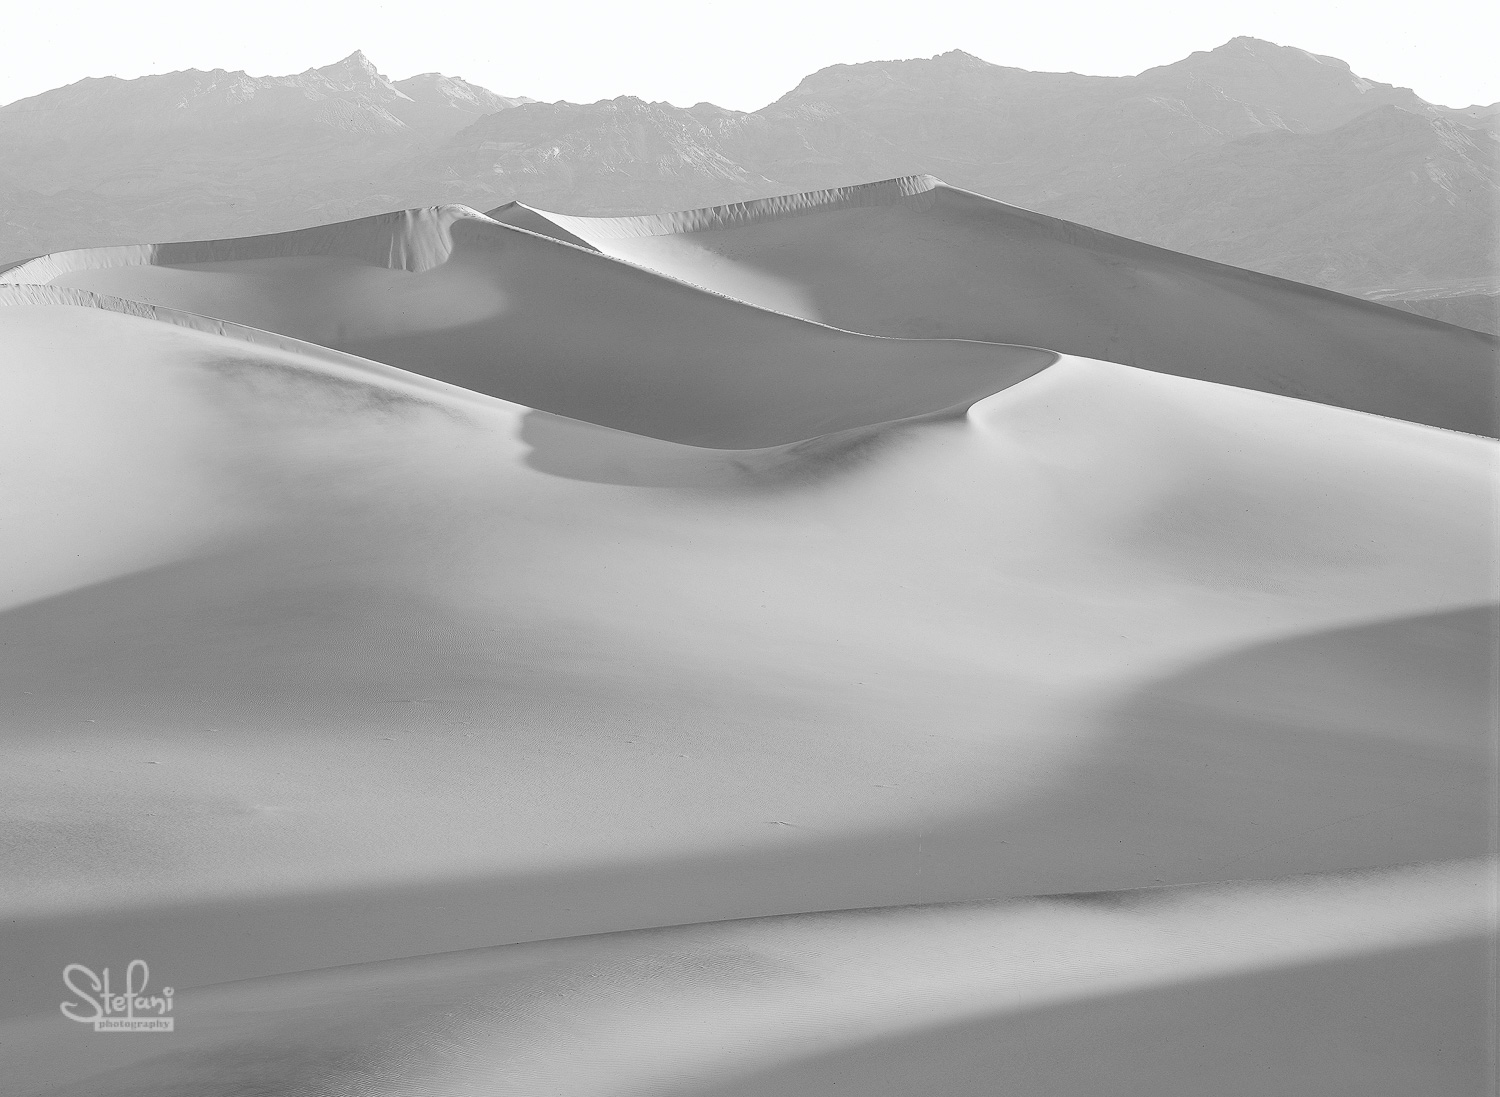 DUNES,  DEATH VALLEY CA